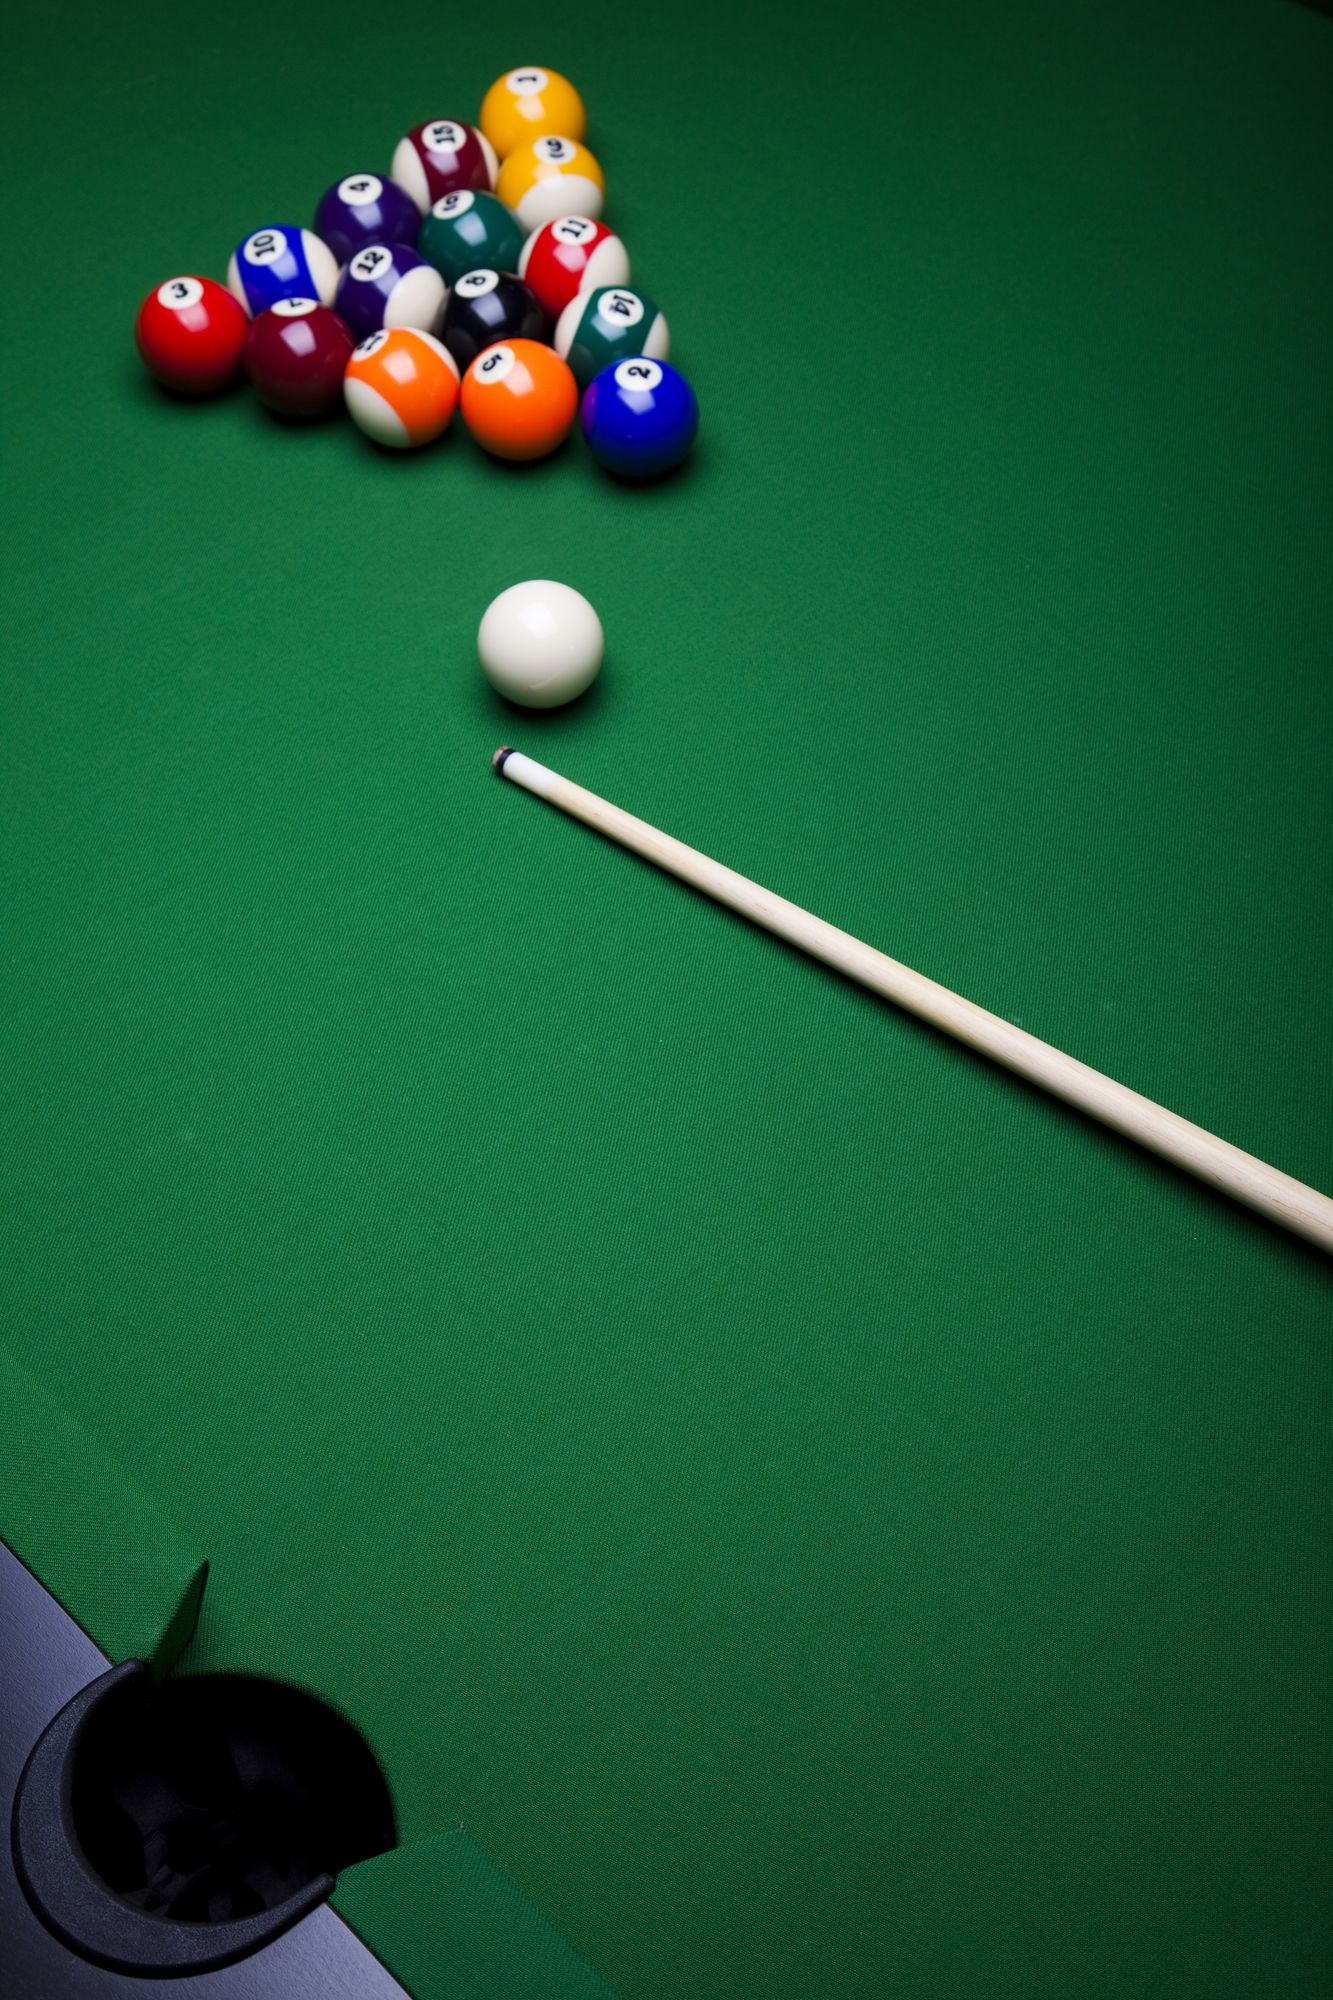 Billiard Background Let S Shoot Some Pool In 2019 Pool Table